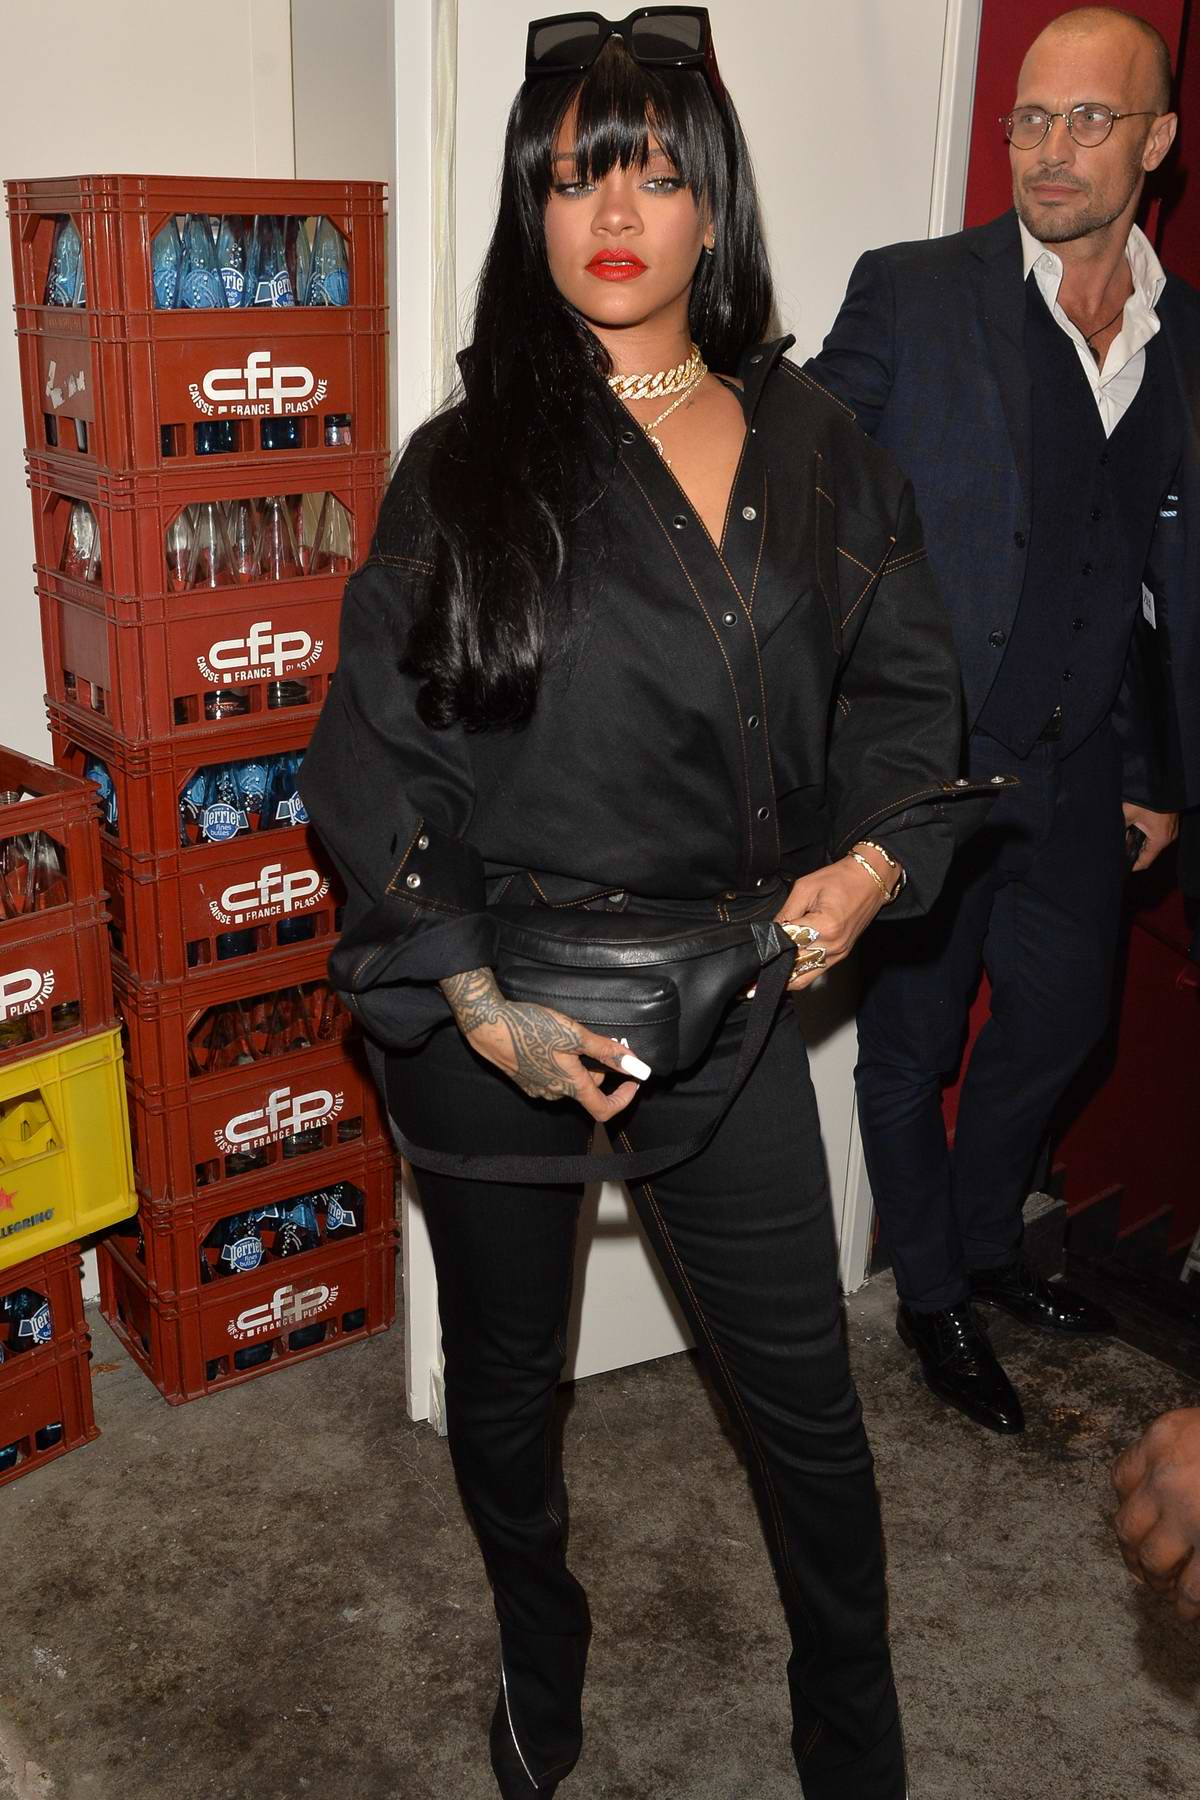 Rihanna arrives at Manko restaurant for the Fenty Launch Party in Paris, France